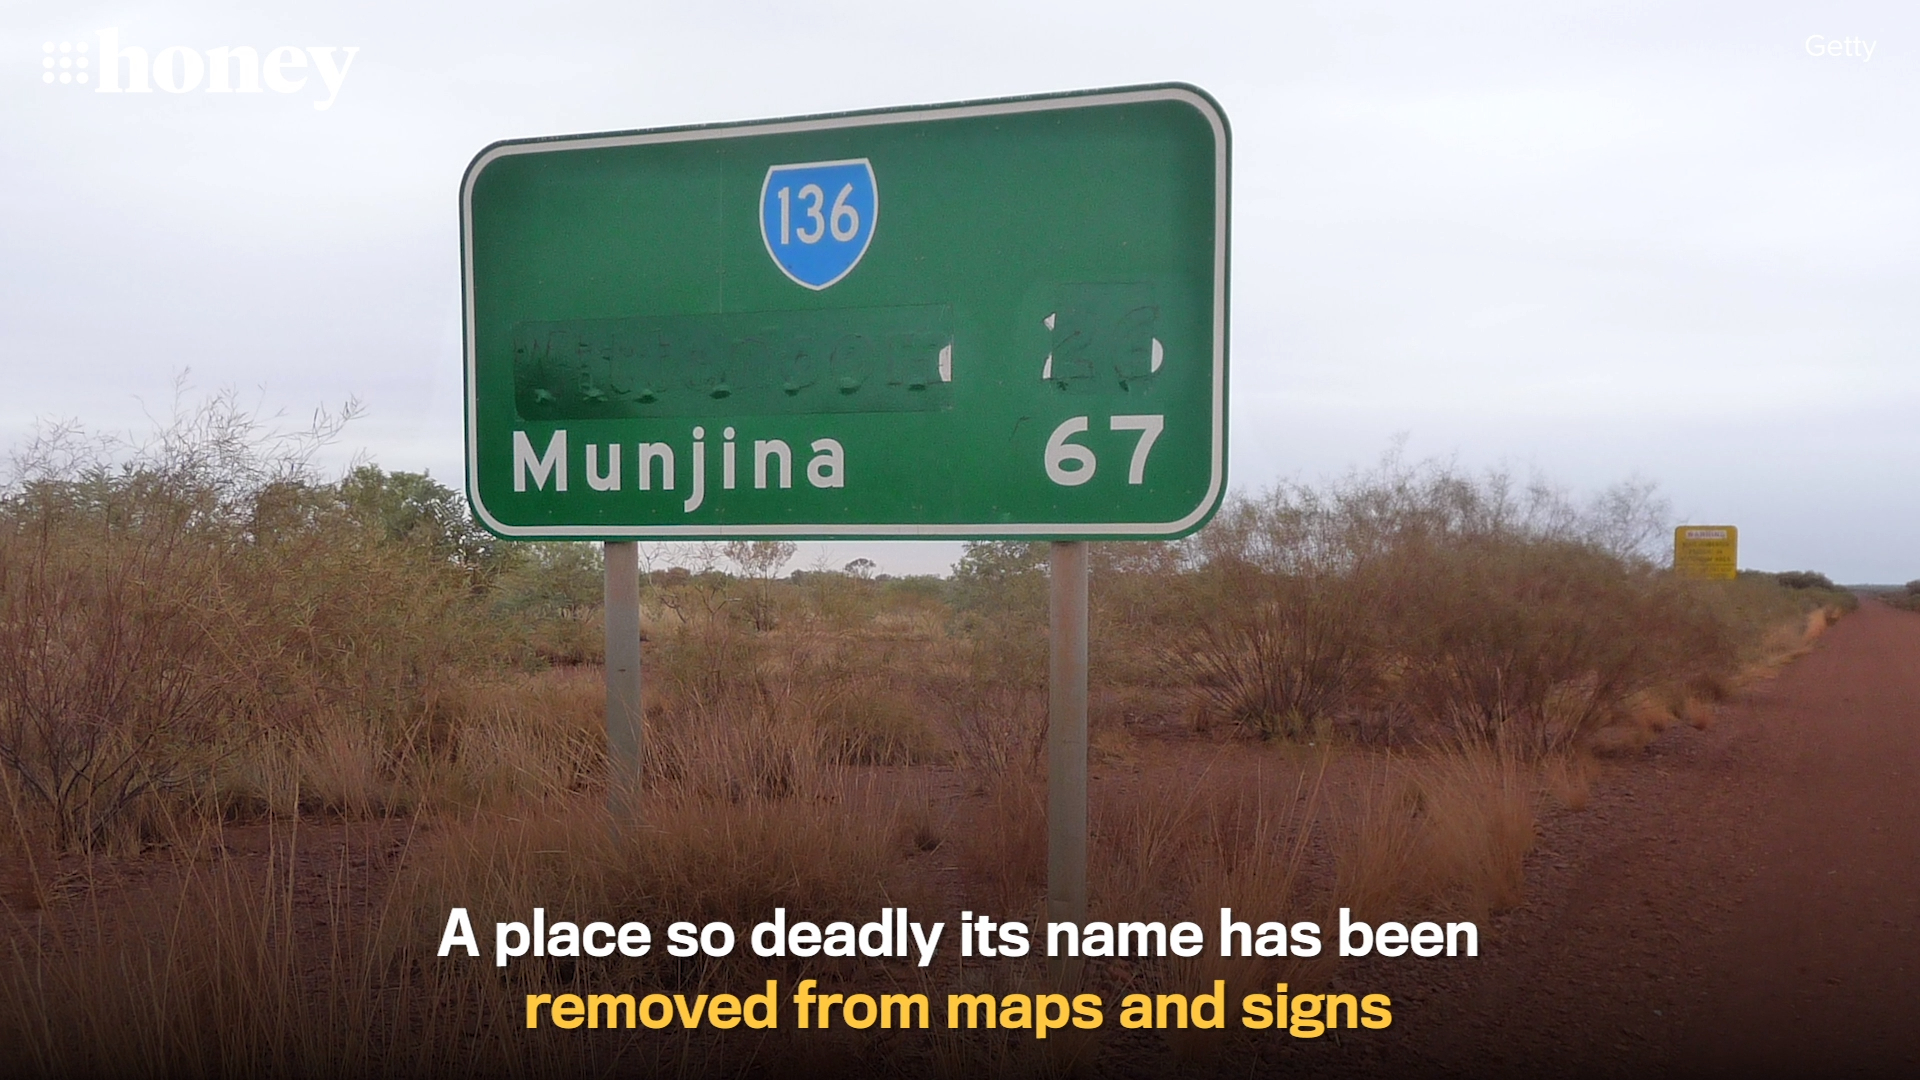 Australian town so deadly it was removed from map